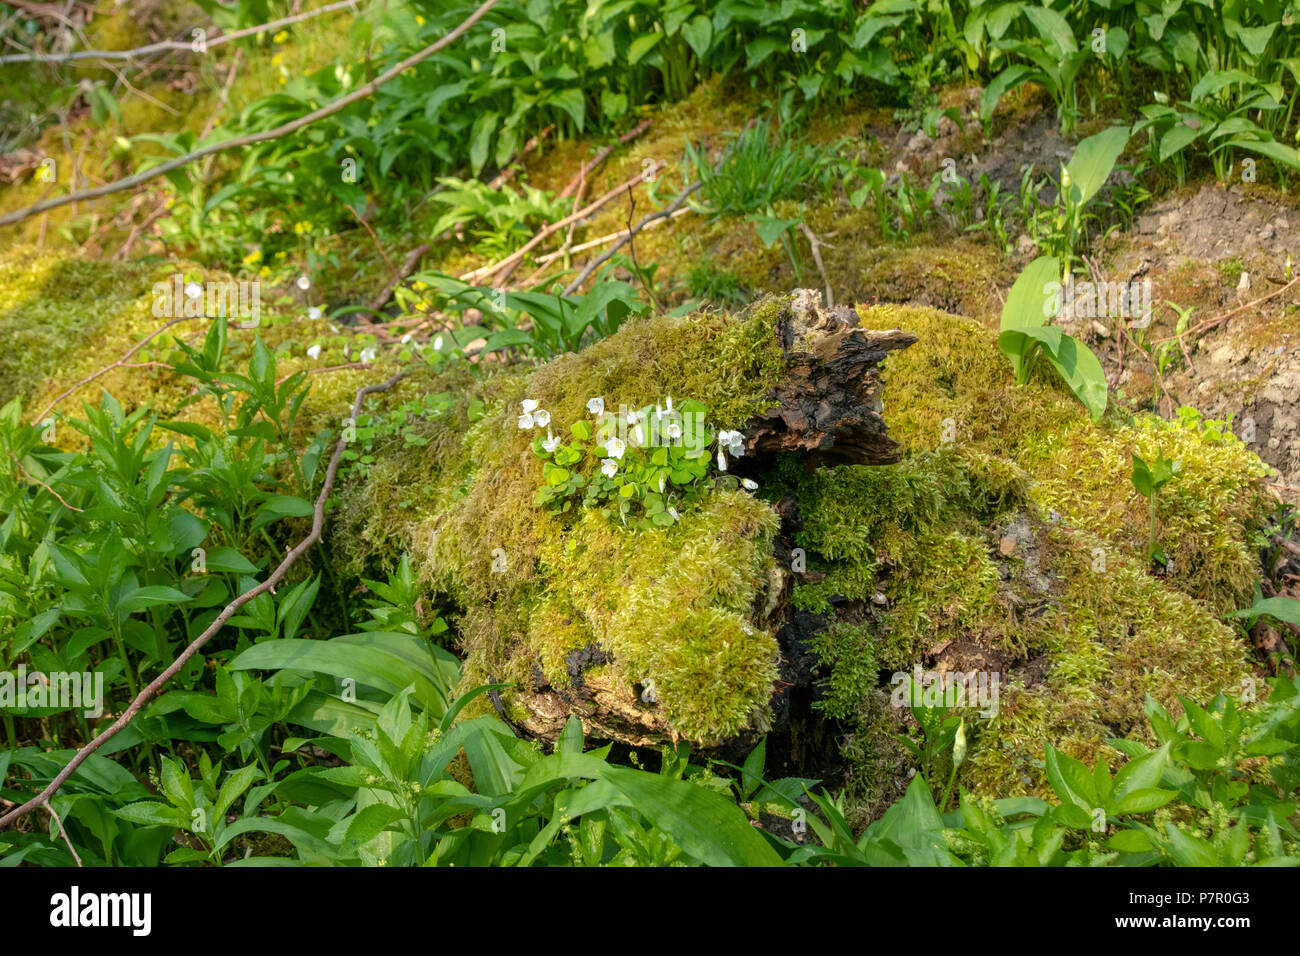 Wood sorrel growing on moss covered dead wood - Stock Image